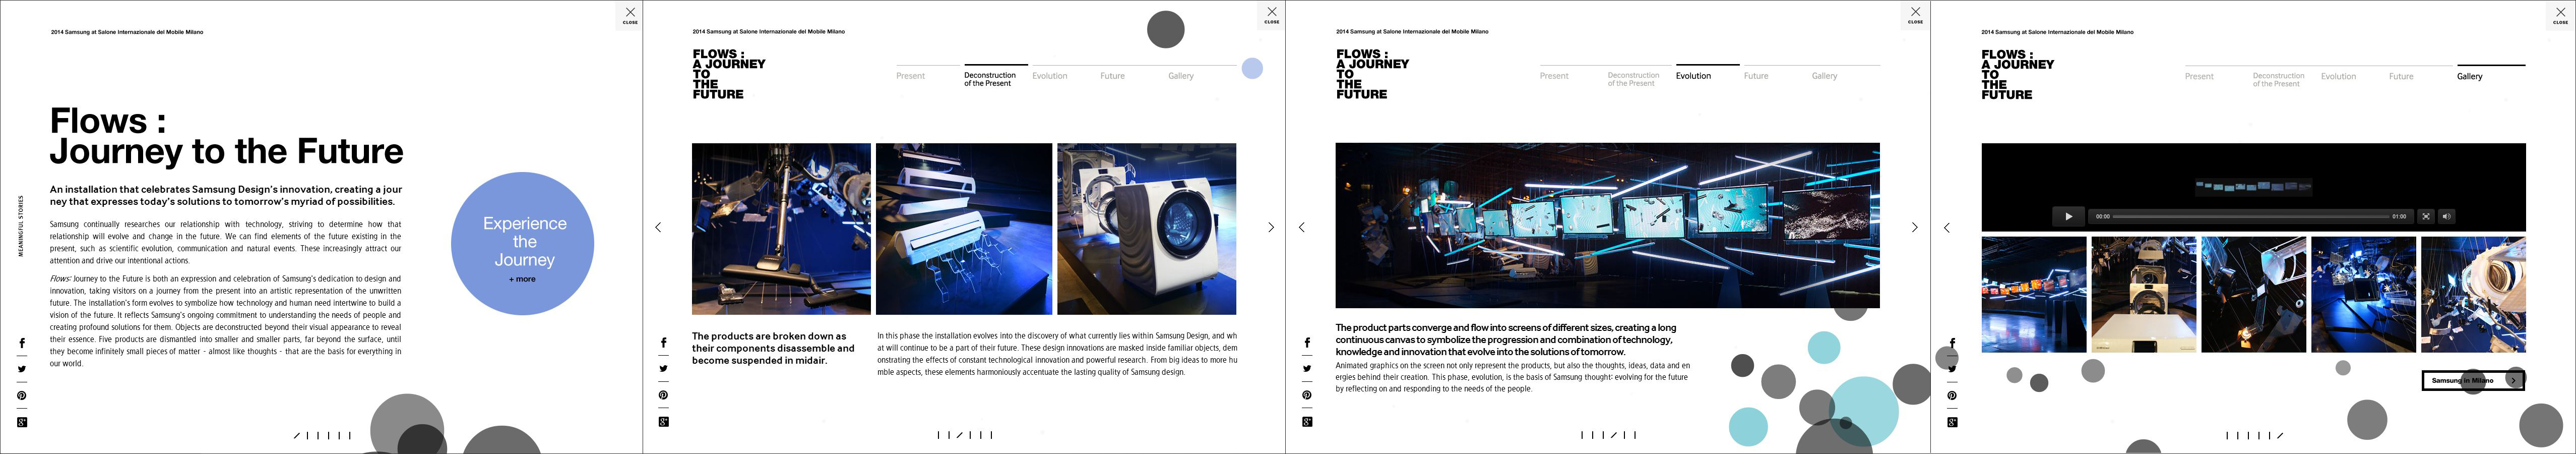 design.samsung.com- meaningful stories